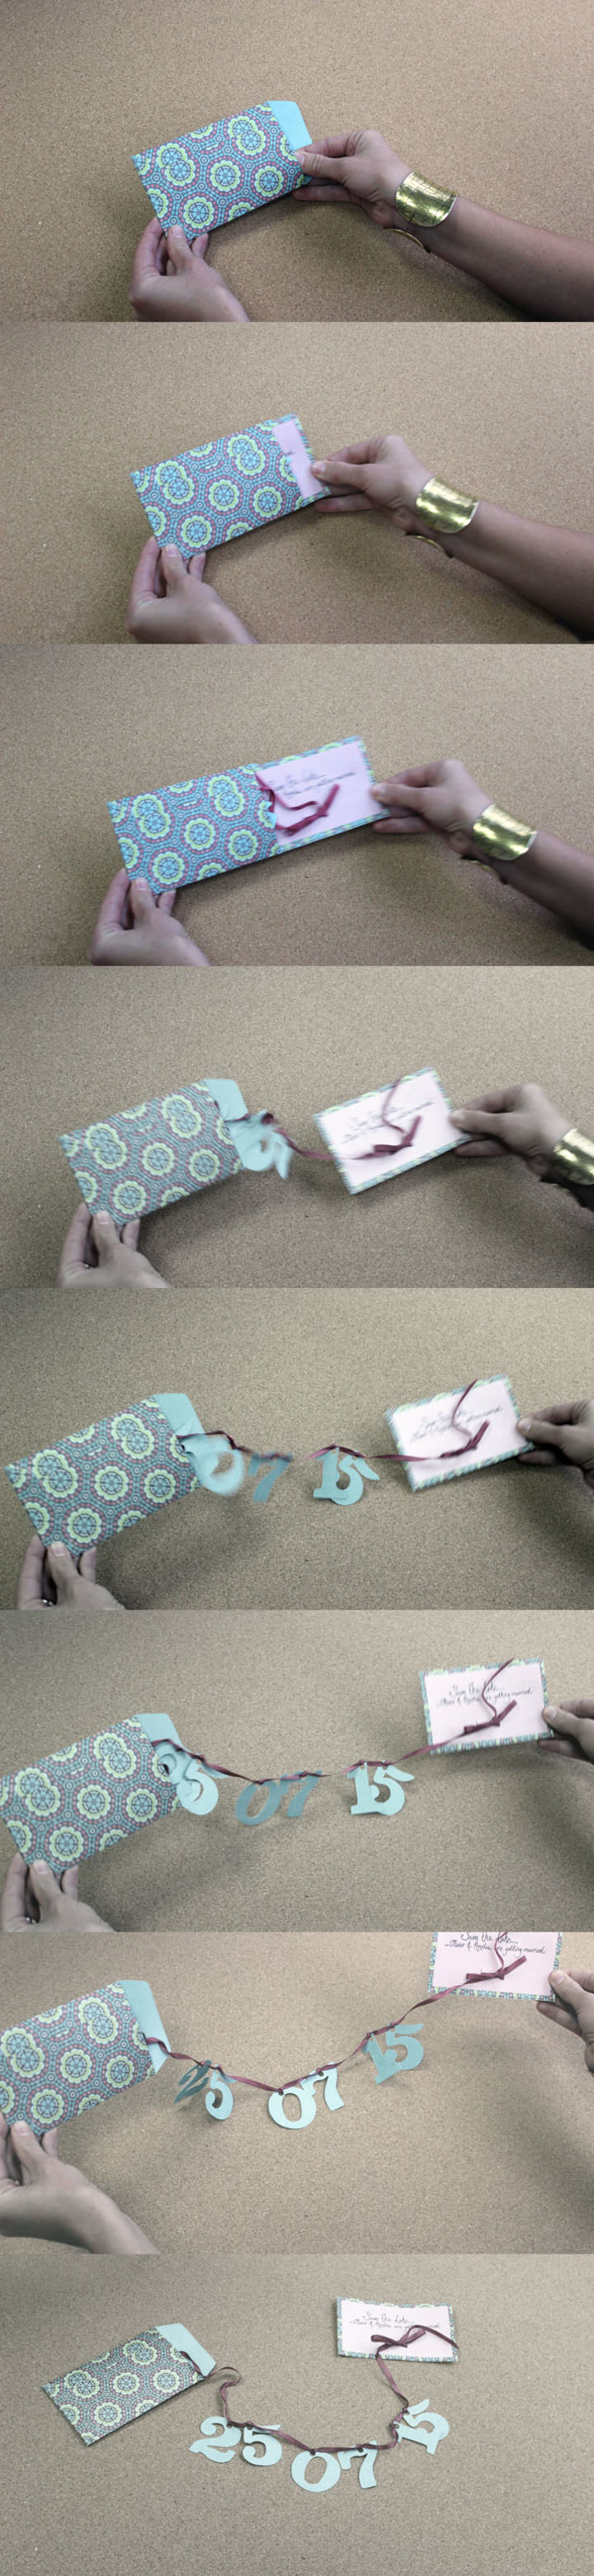 28-how-to-make-a-save-the-date-ribbon